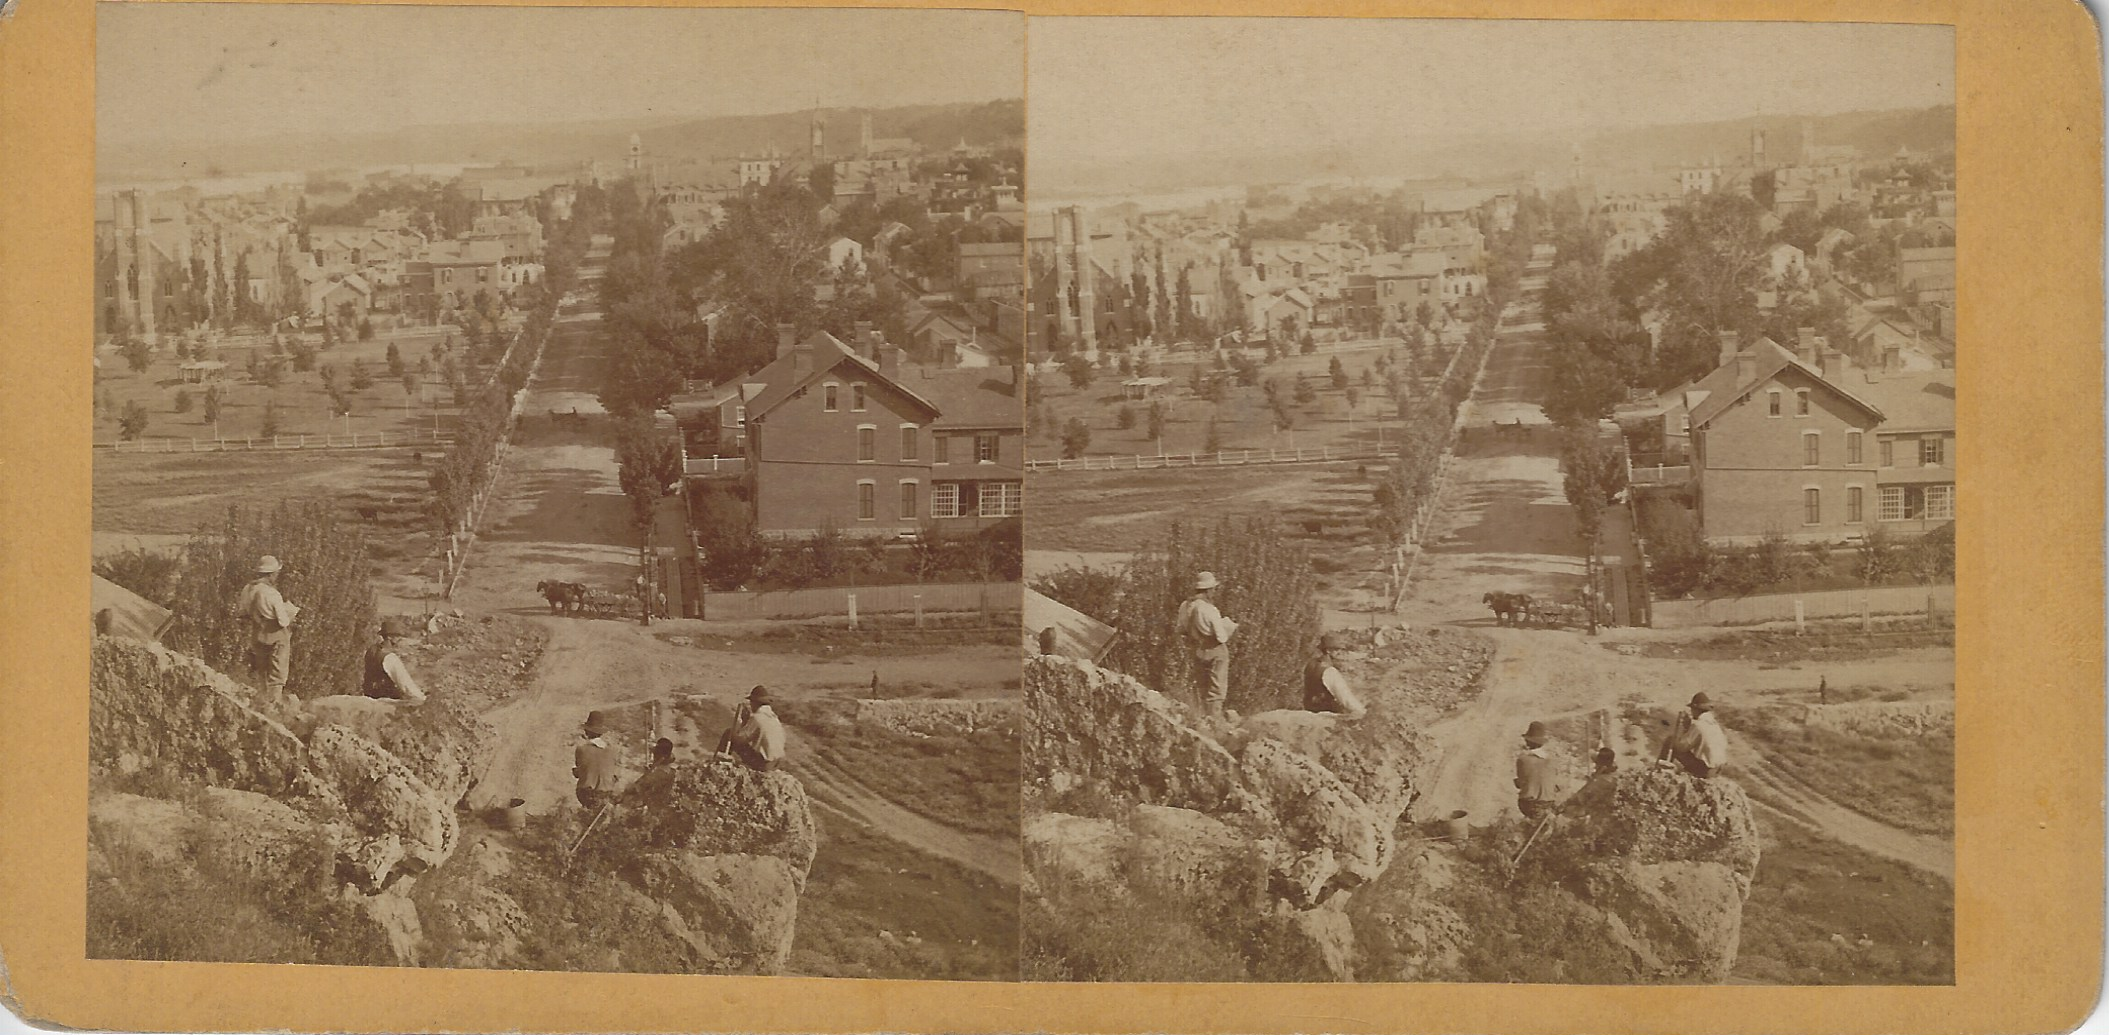 LJTP 100.288 - S. Root - 17th & Main St from Seminary Hill - c1875